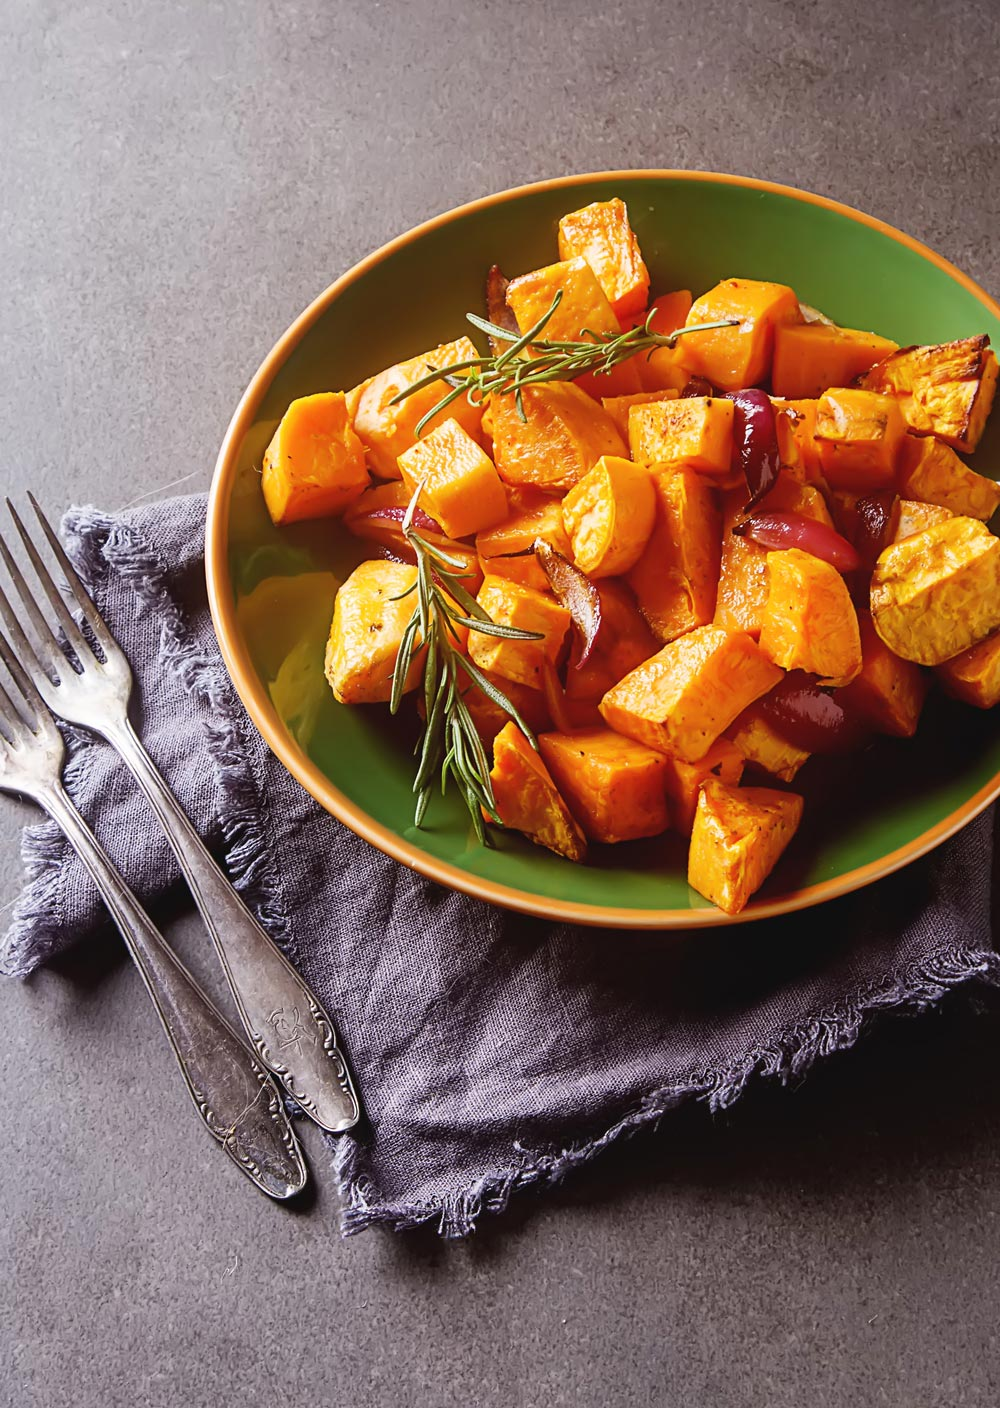 Roasted Sweet Potatoes - #MakeItGAP Recipe